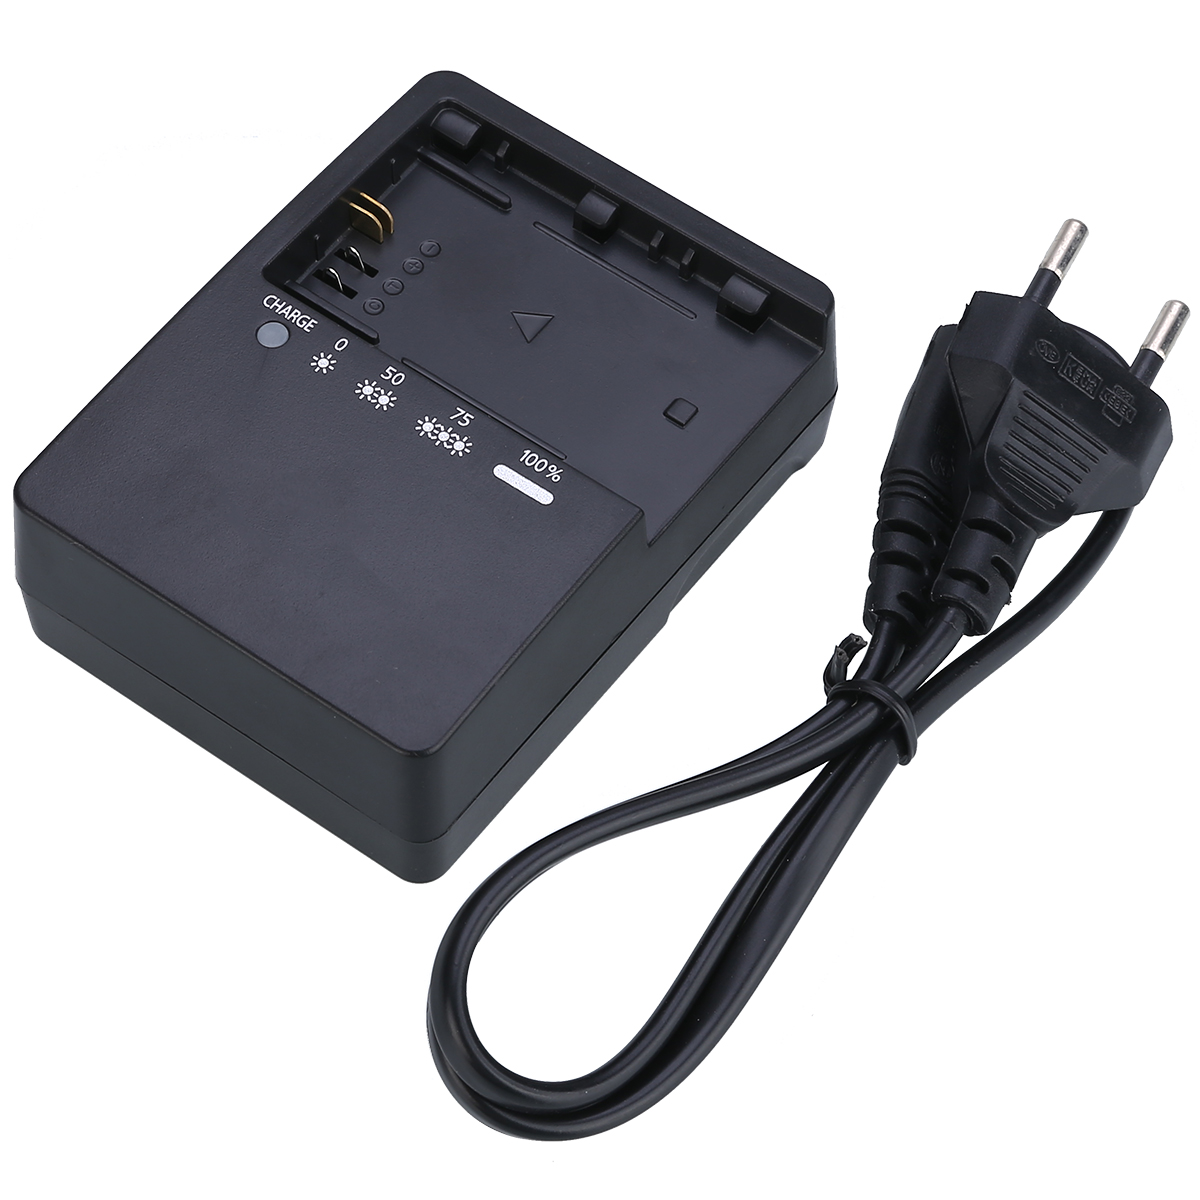 Newest LC-E6E Battery Charger Fast Charging Camera Charger For Canon LP-E6 5D Mark II III 7D 5D2 5D3 7D 60D 6D Batteries